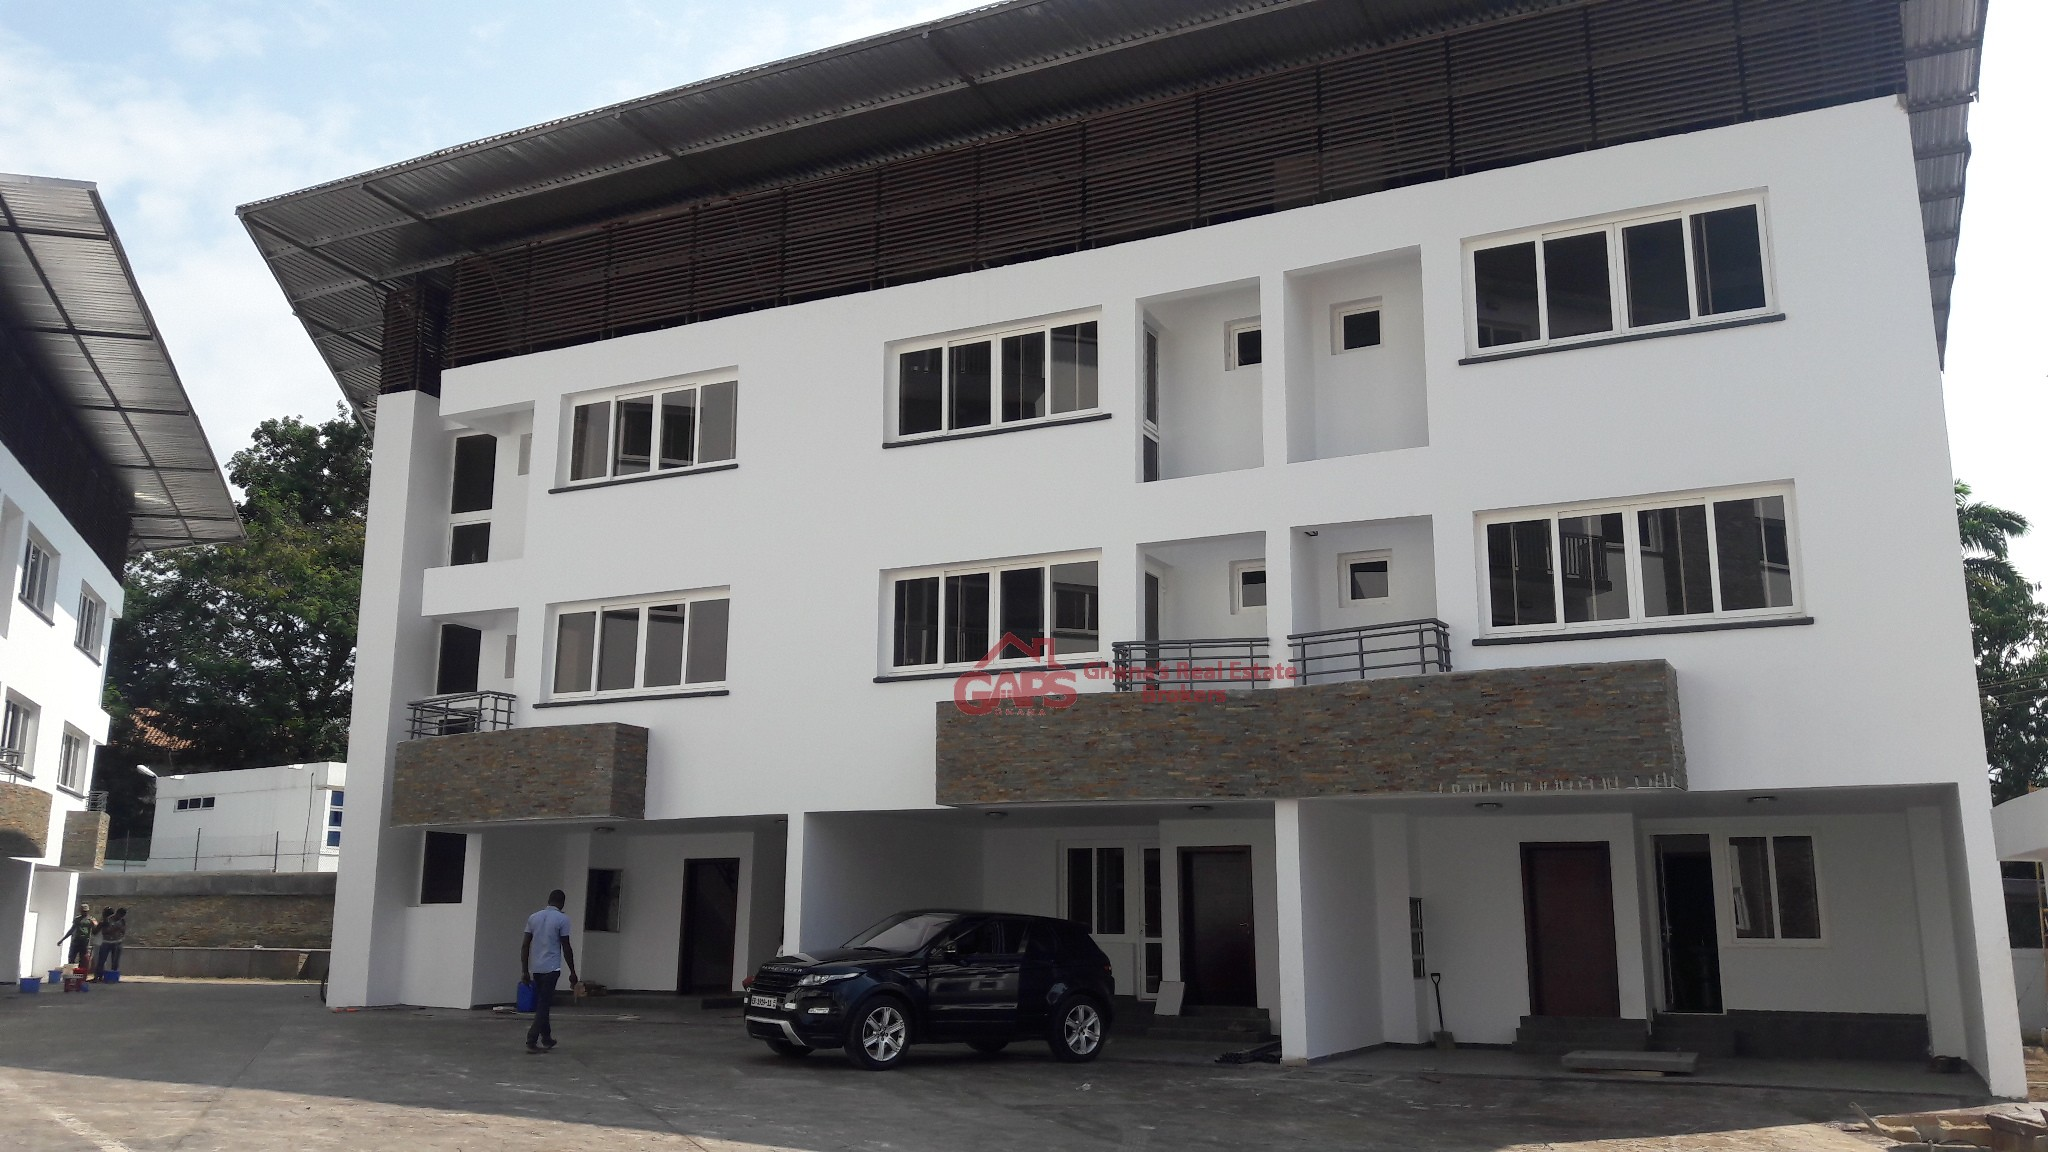 3 Bedroom Apartments For Sale At Ridge Gaps Ghana Real Estate Brokers